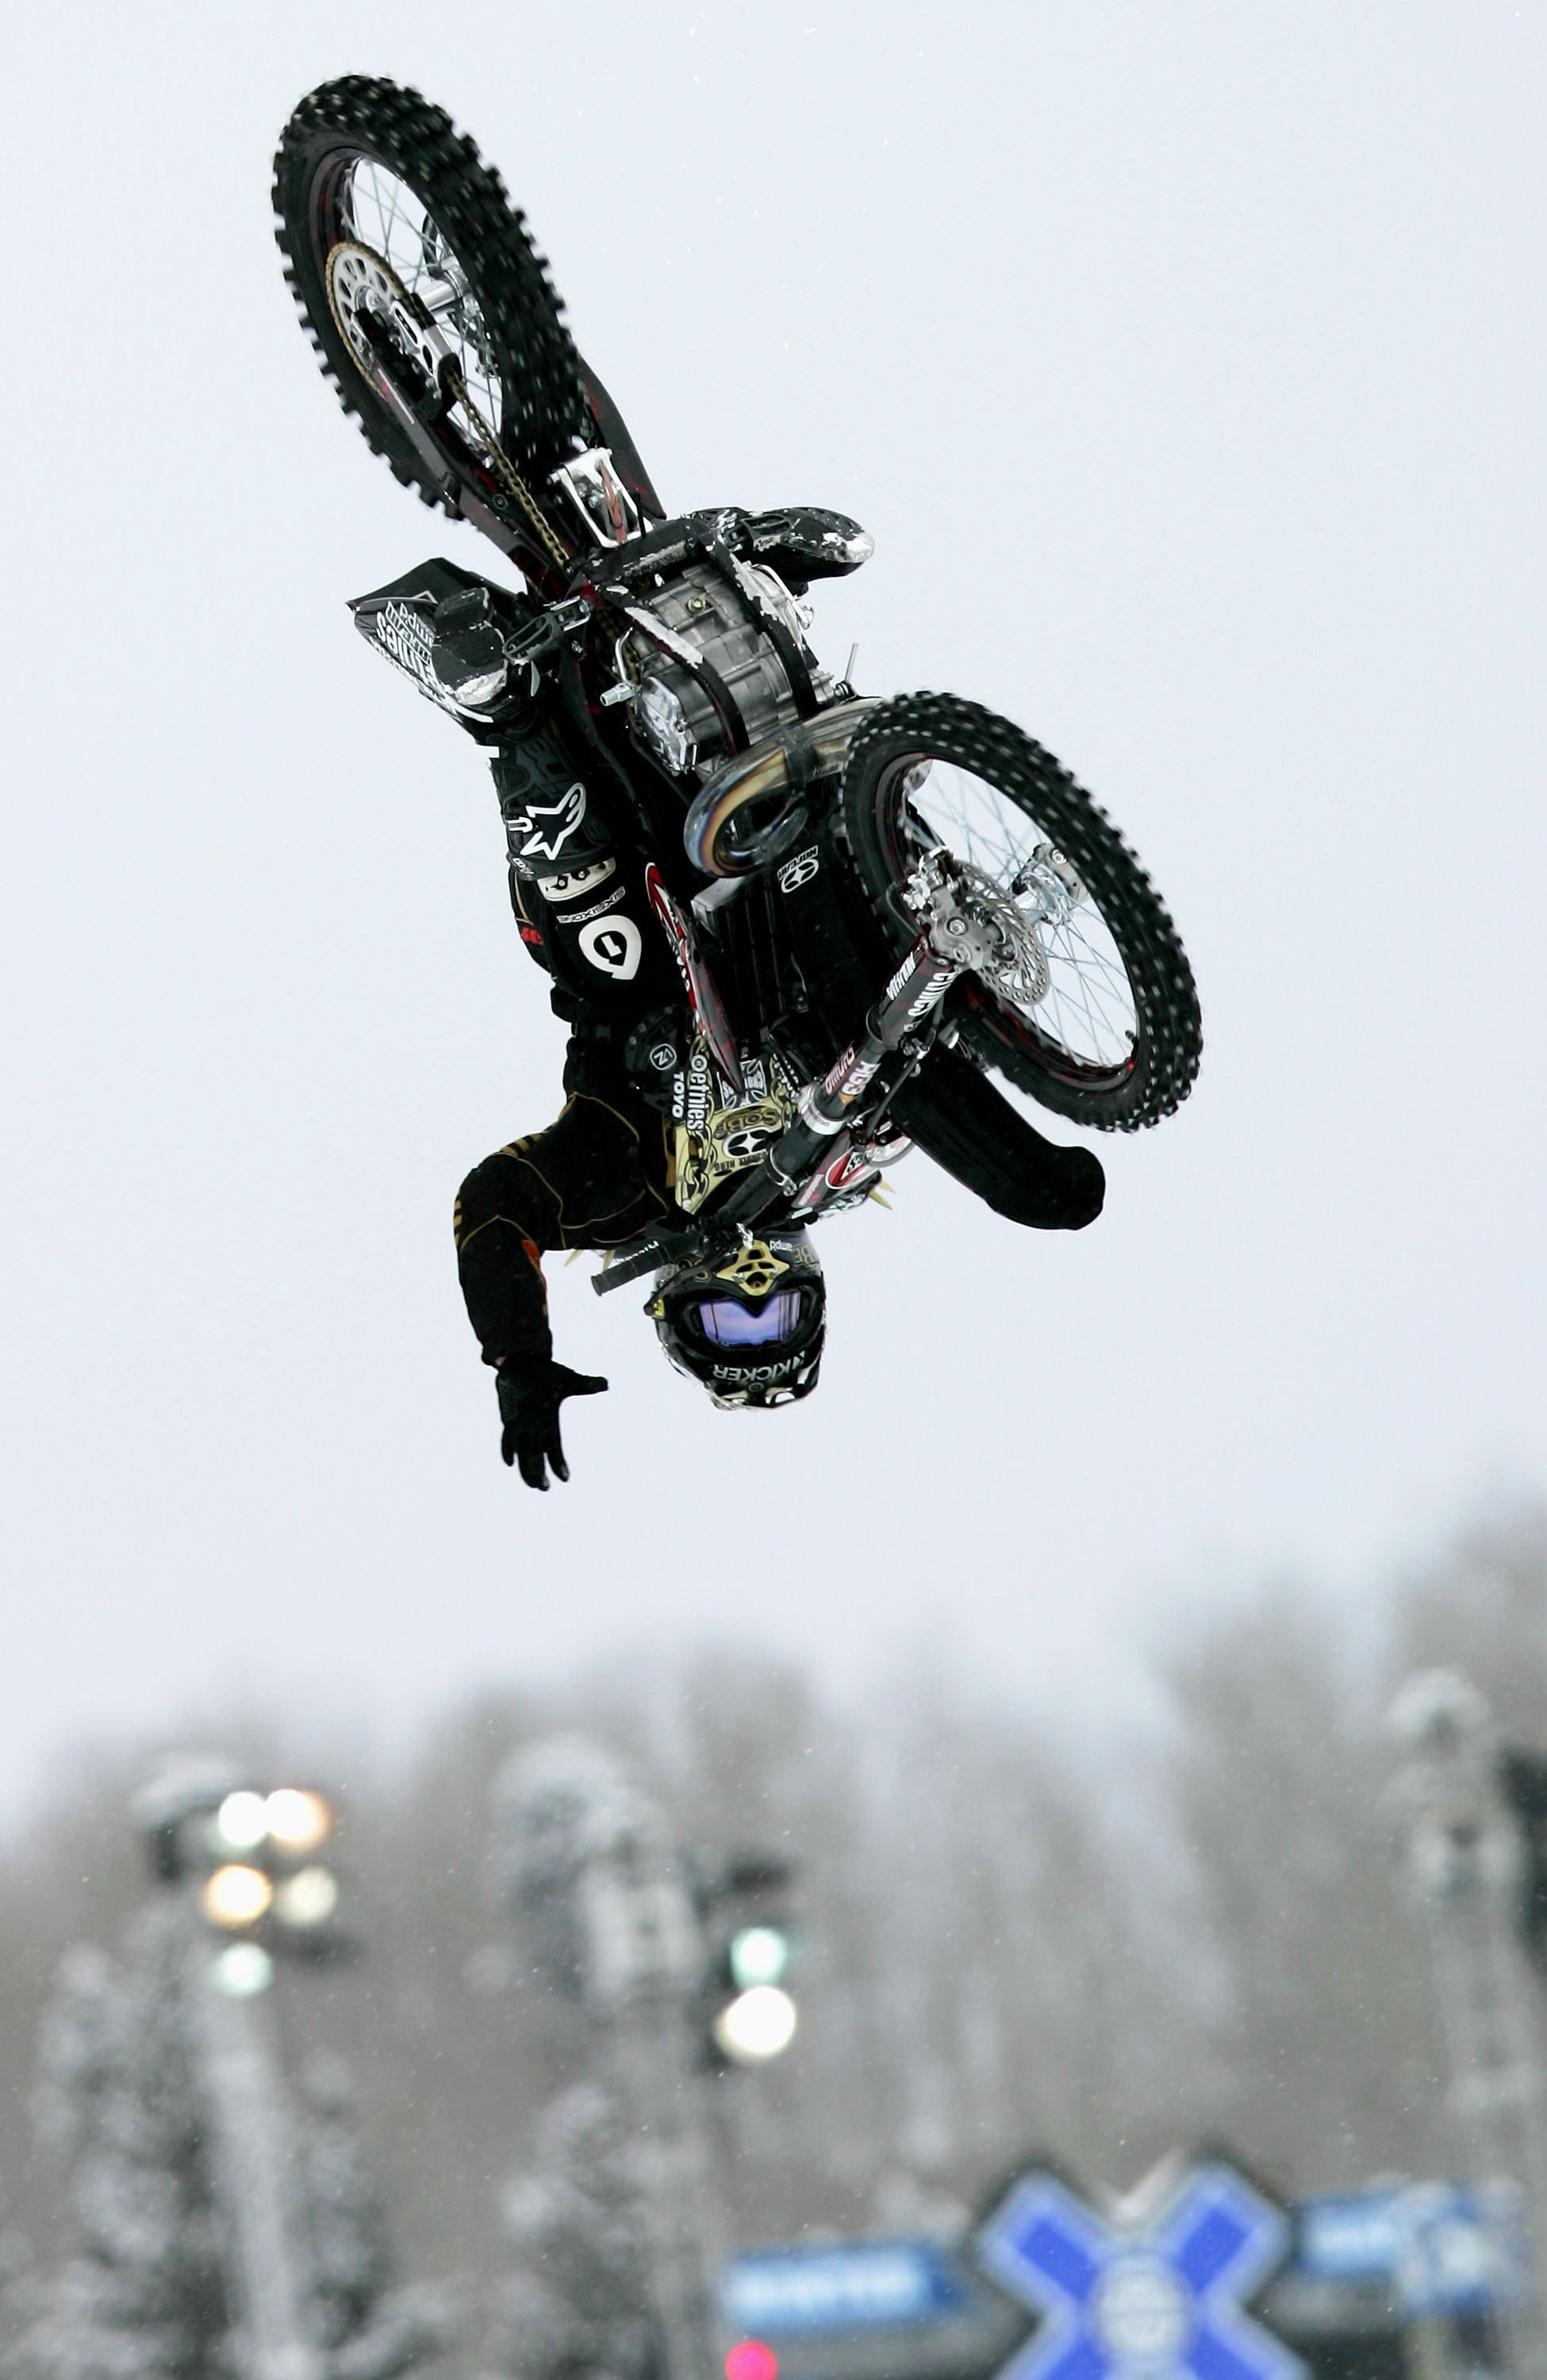 ASPEN, CO - JANUARY 29:  Brian Deegan of Temecula, California takes his second run in the preliminaries as he finished fourth to advance to the finals in the Moto X Best Trick at Winter X Games 10 on January 29, 2006 at Buttermilk Mountain in Aspen, Color